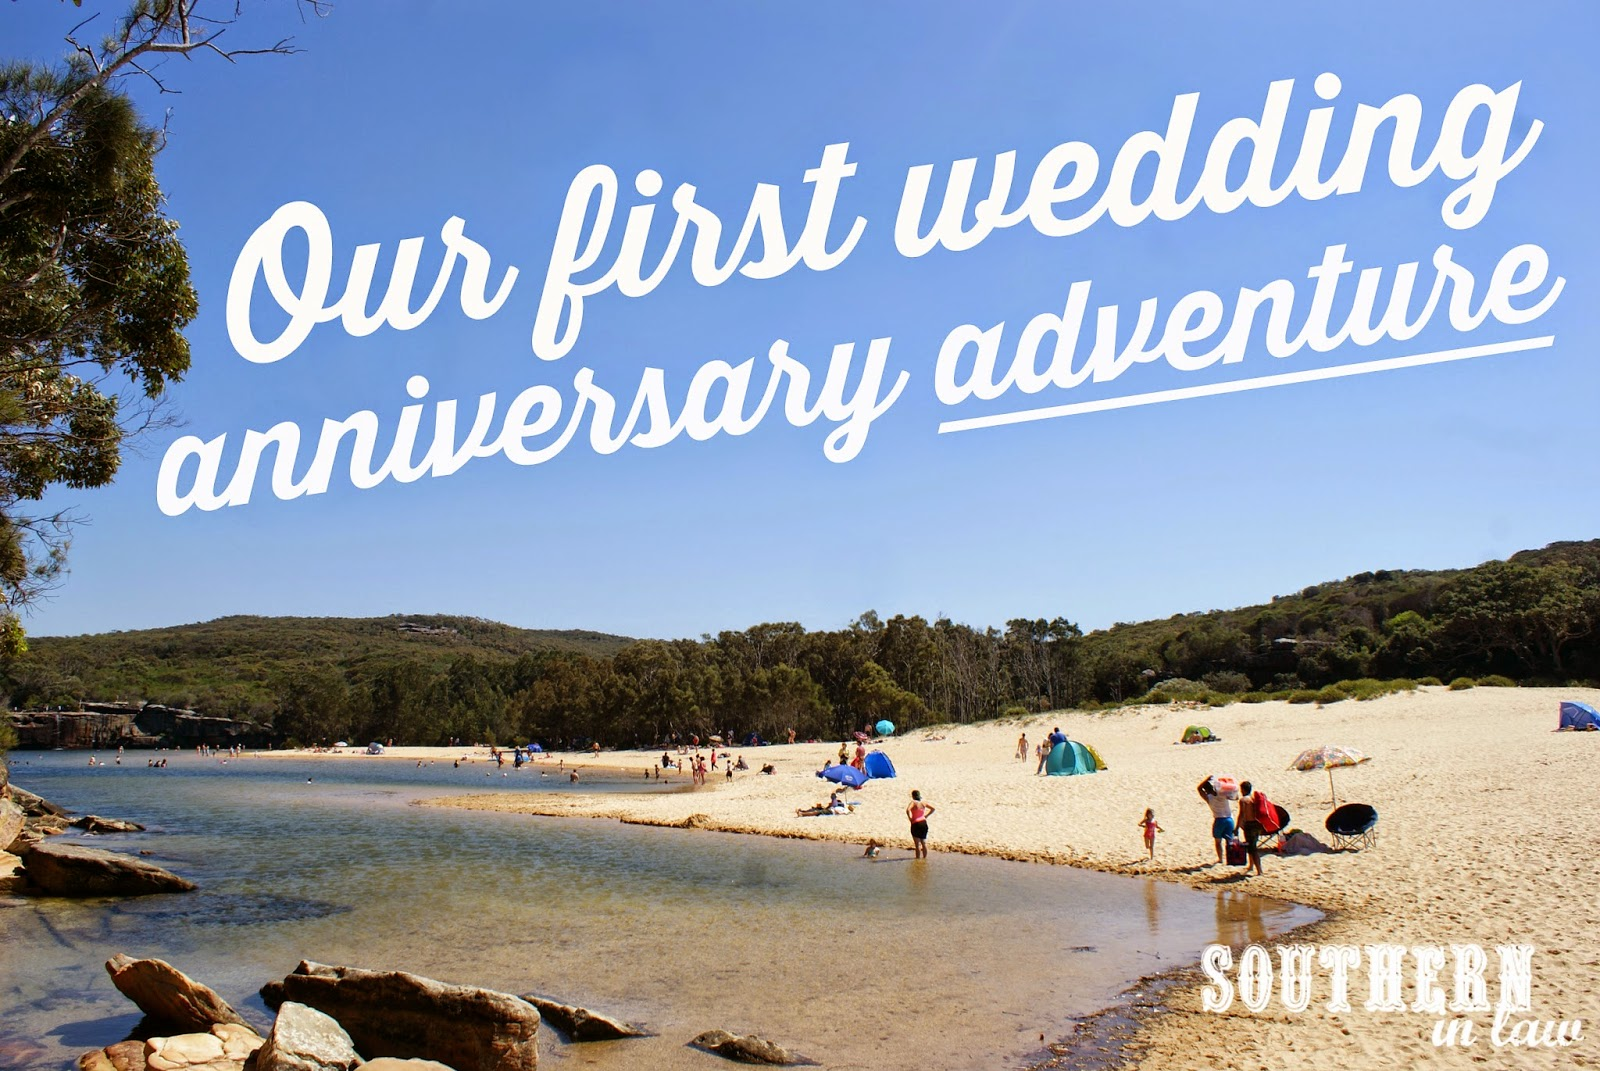 Our First Wedding Anniversary Date Day at the Royal National Park, NSW